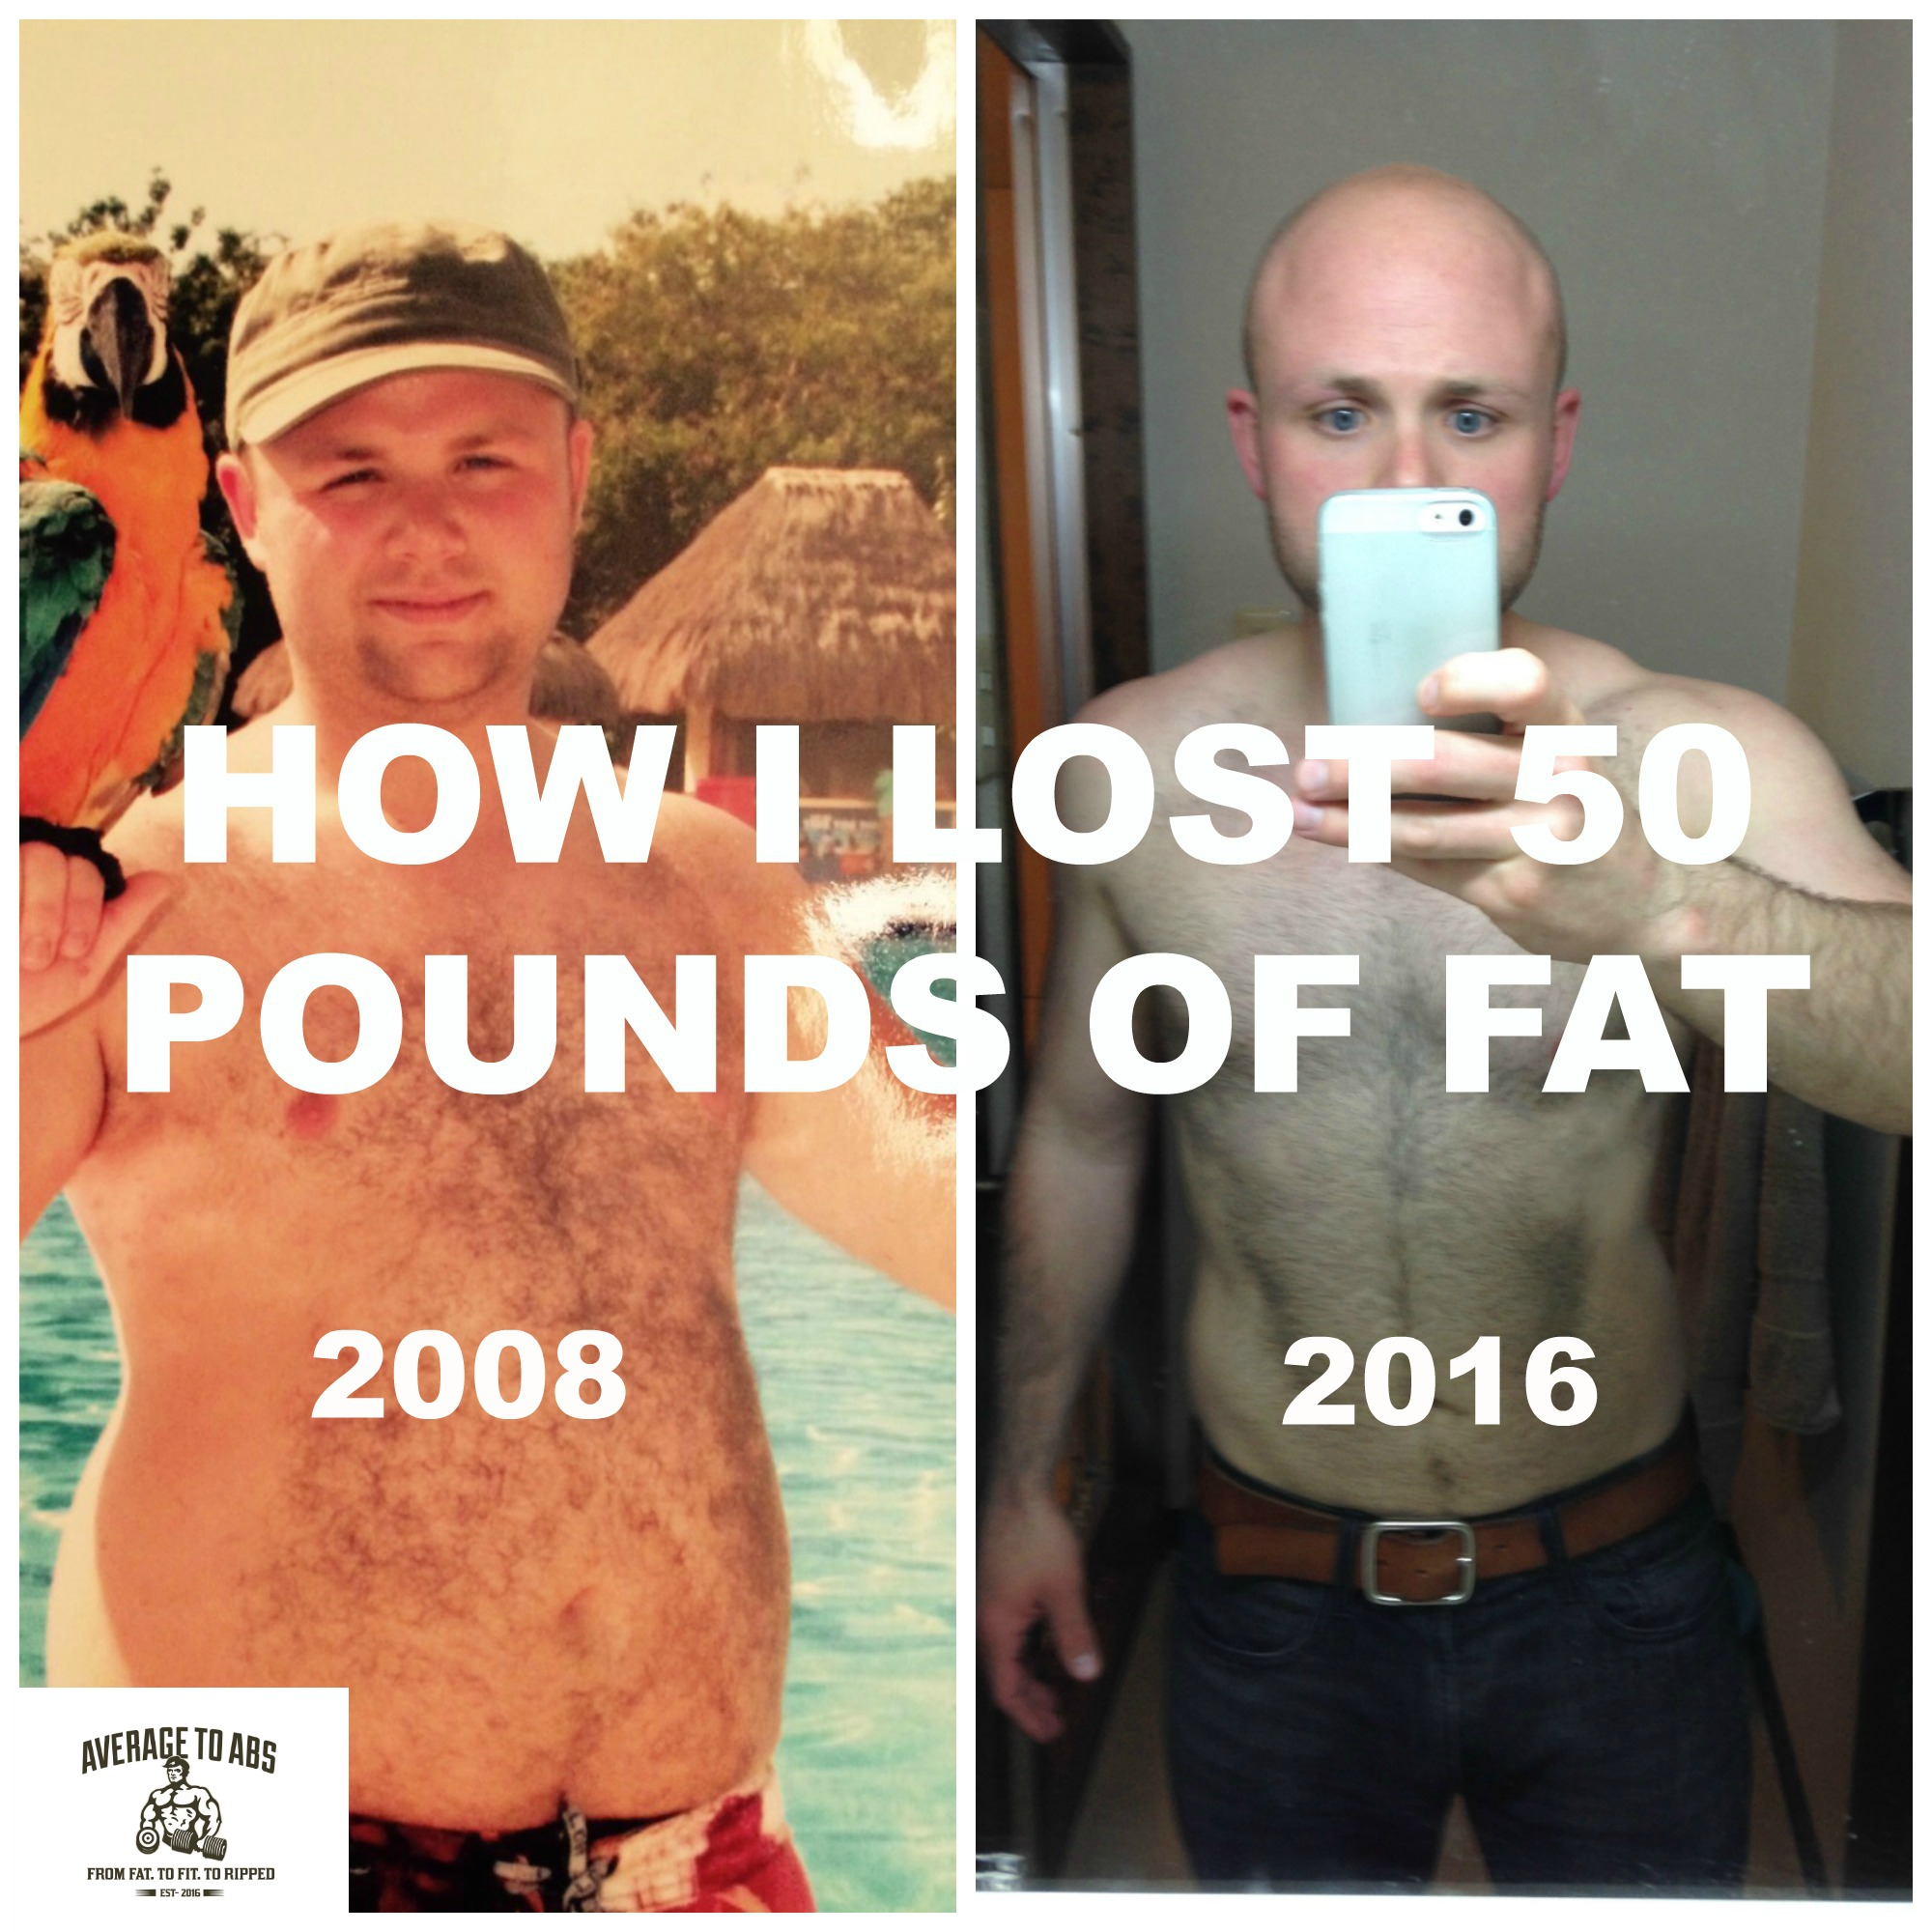 HOW I LOST 50 POUNDS OF FAT